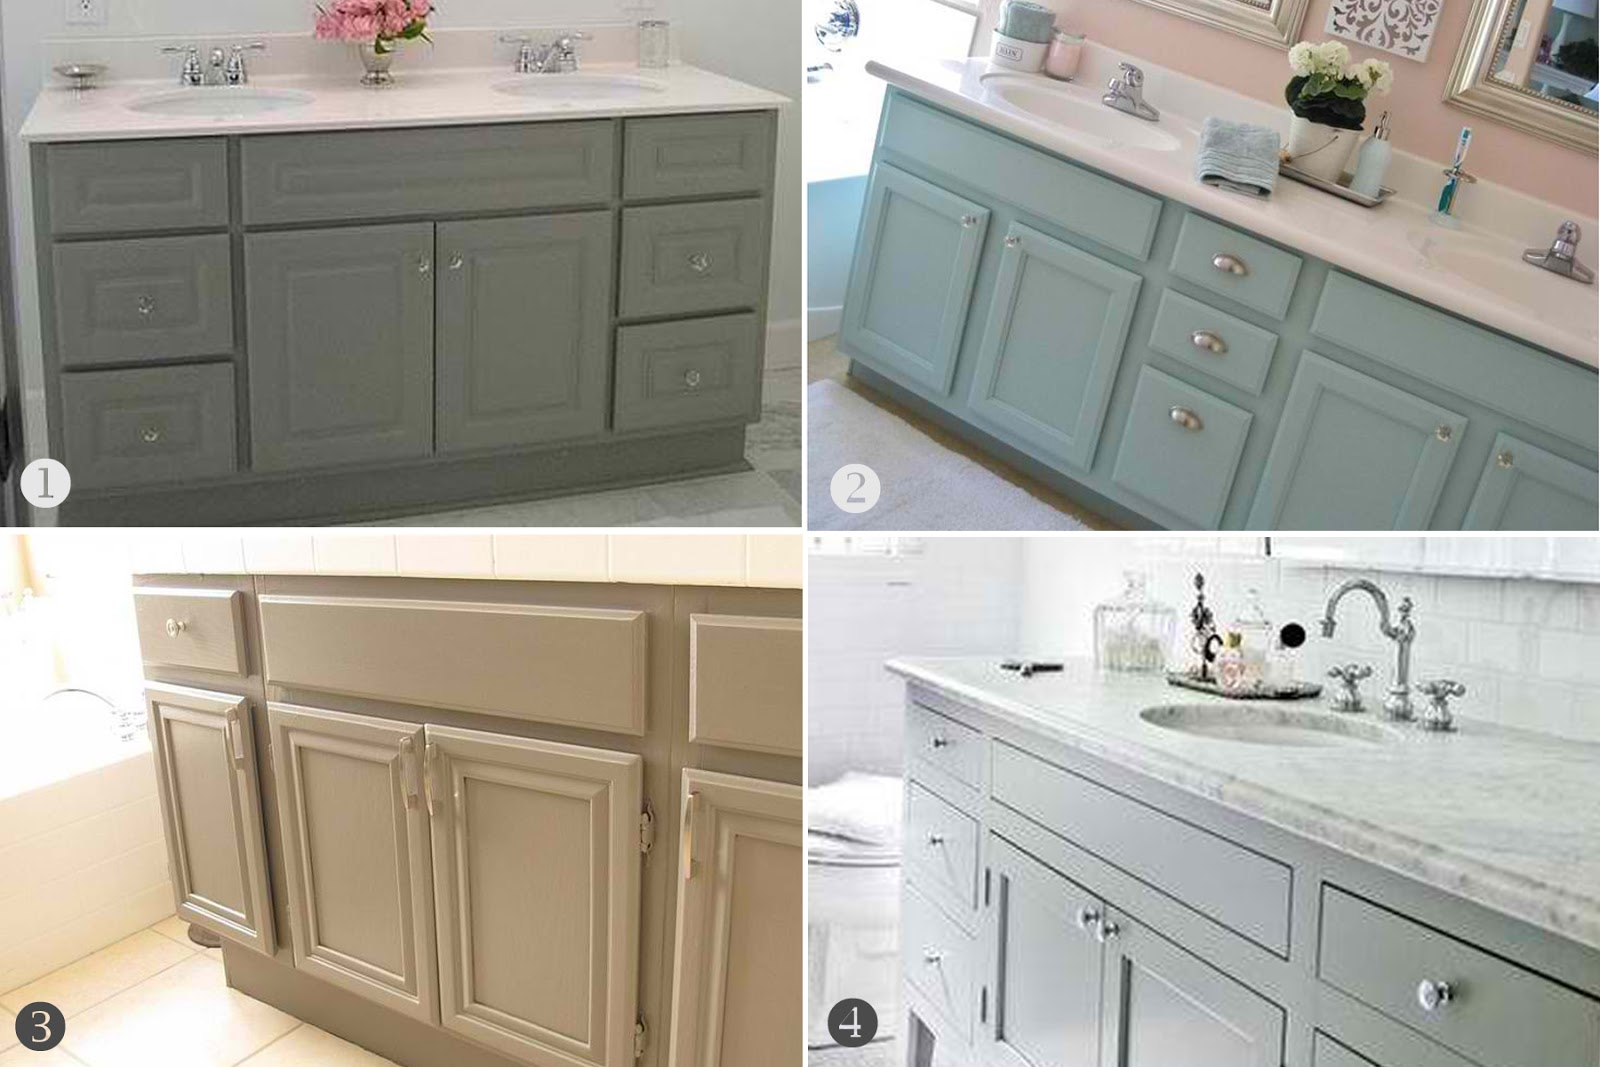 Inspired honey bee home bathroom cabinets upgrade for Bathroom cabinet ideas